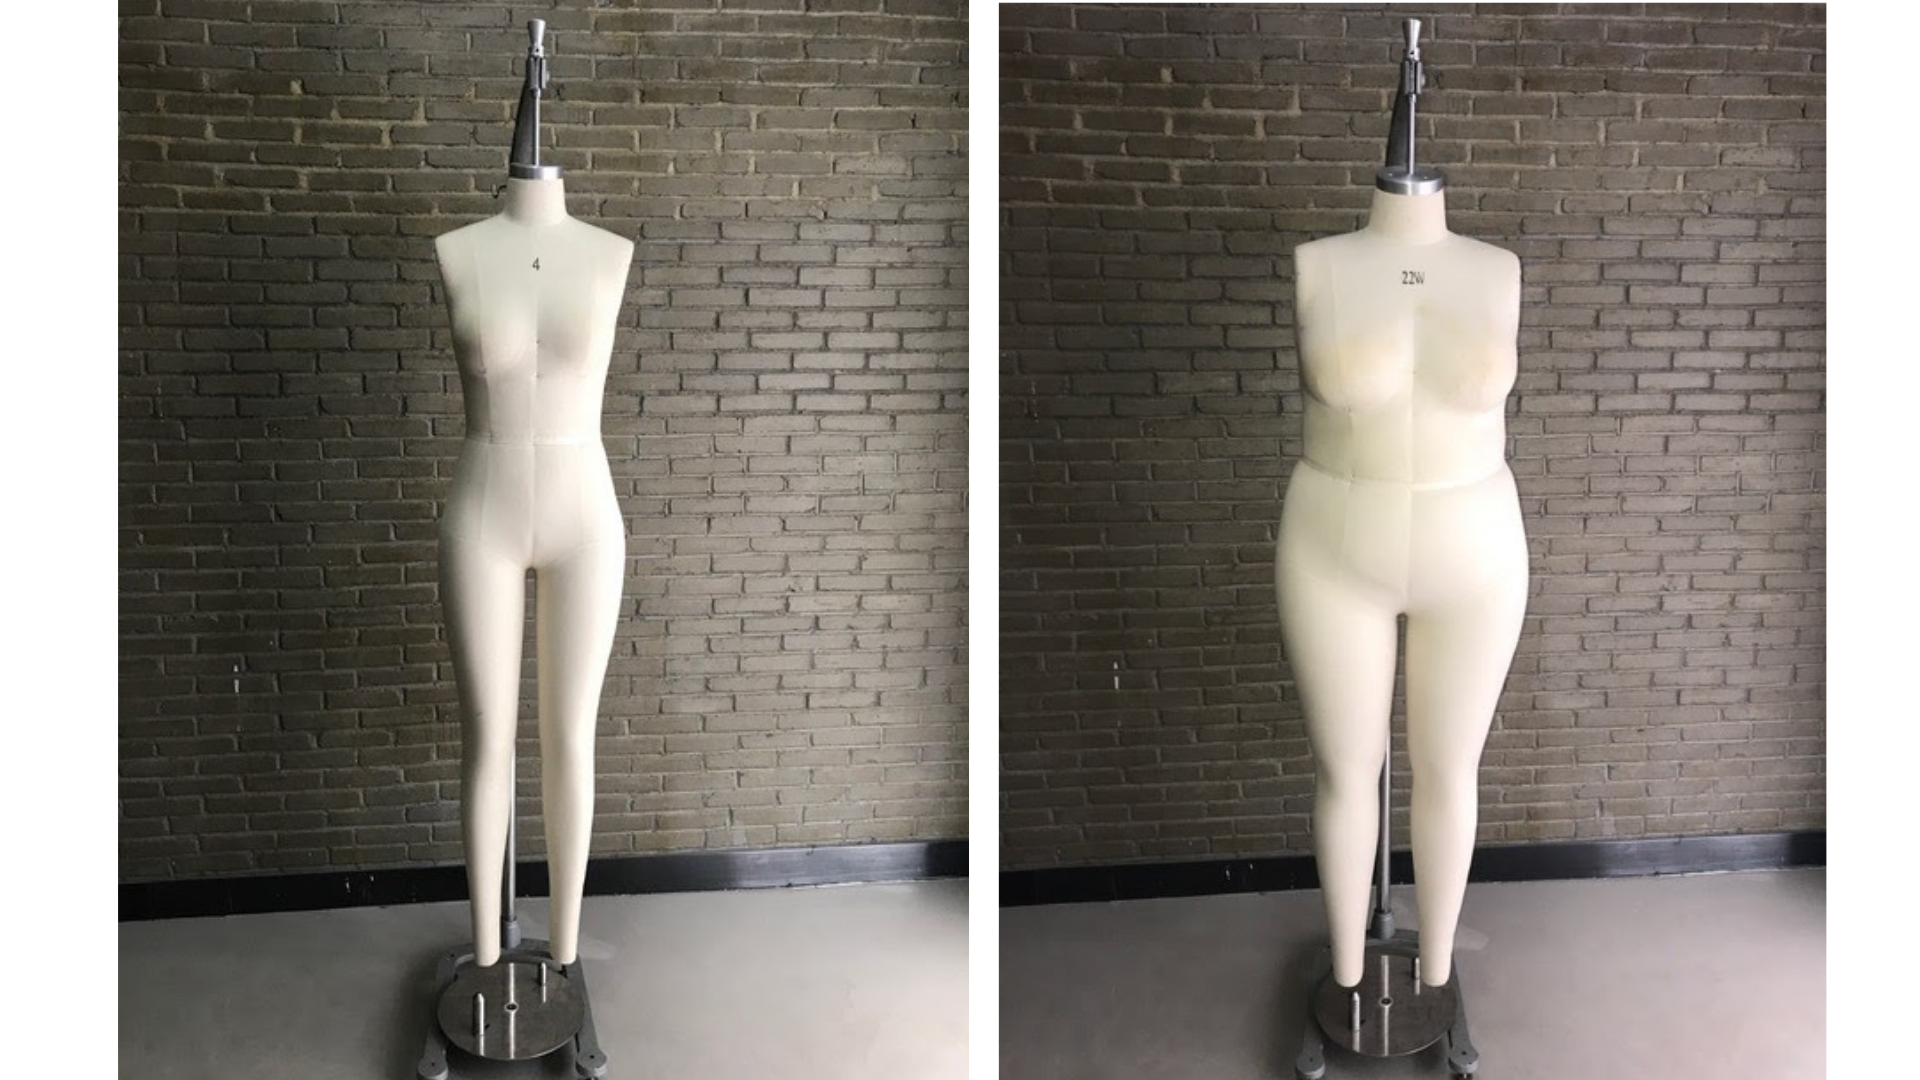 On the left, a regular size tailor's dummy against a brick wall. On the right, a plus-size mannequin in front of a brick wall.